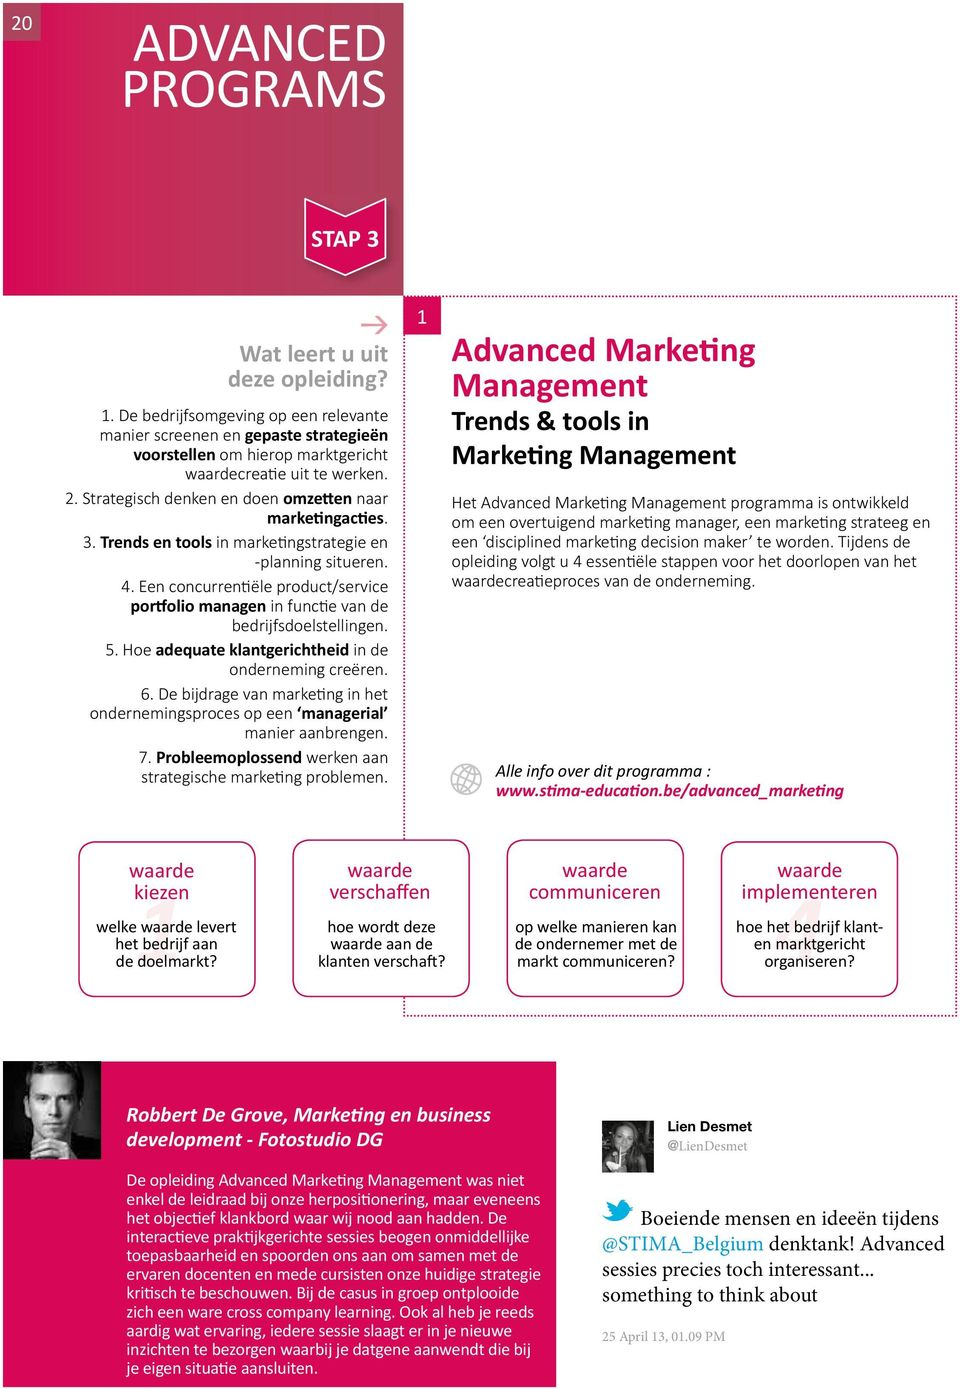 3. Trends en tools in marketingstrategie en -planning situeren. 4. Een concurrentiële product/service portfolio managen in functie van de bedrijfsdoelstellingen. 5.